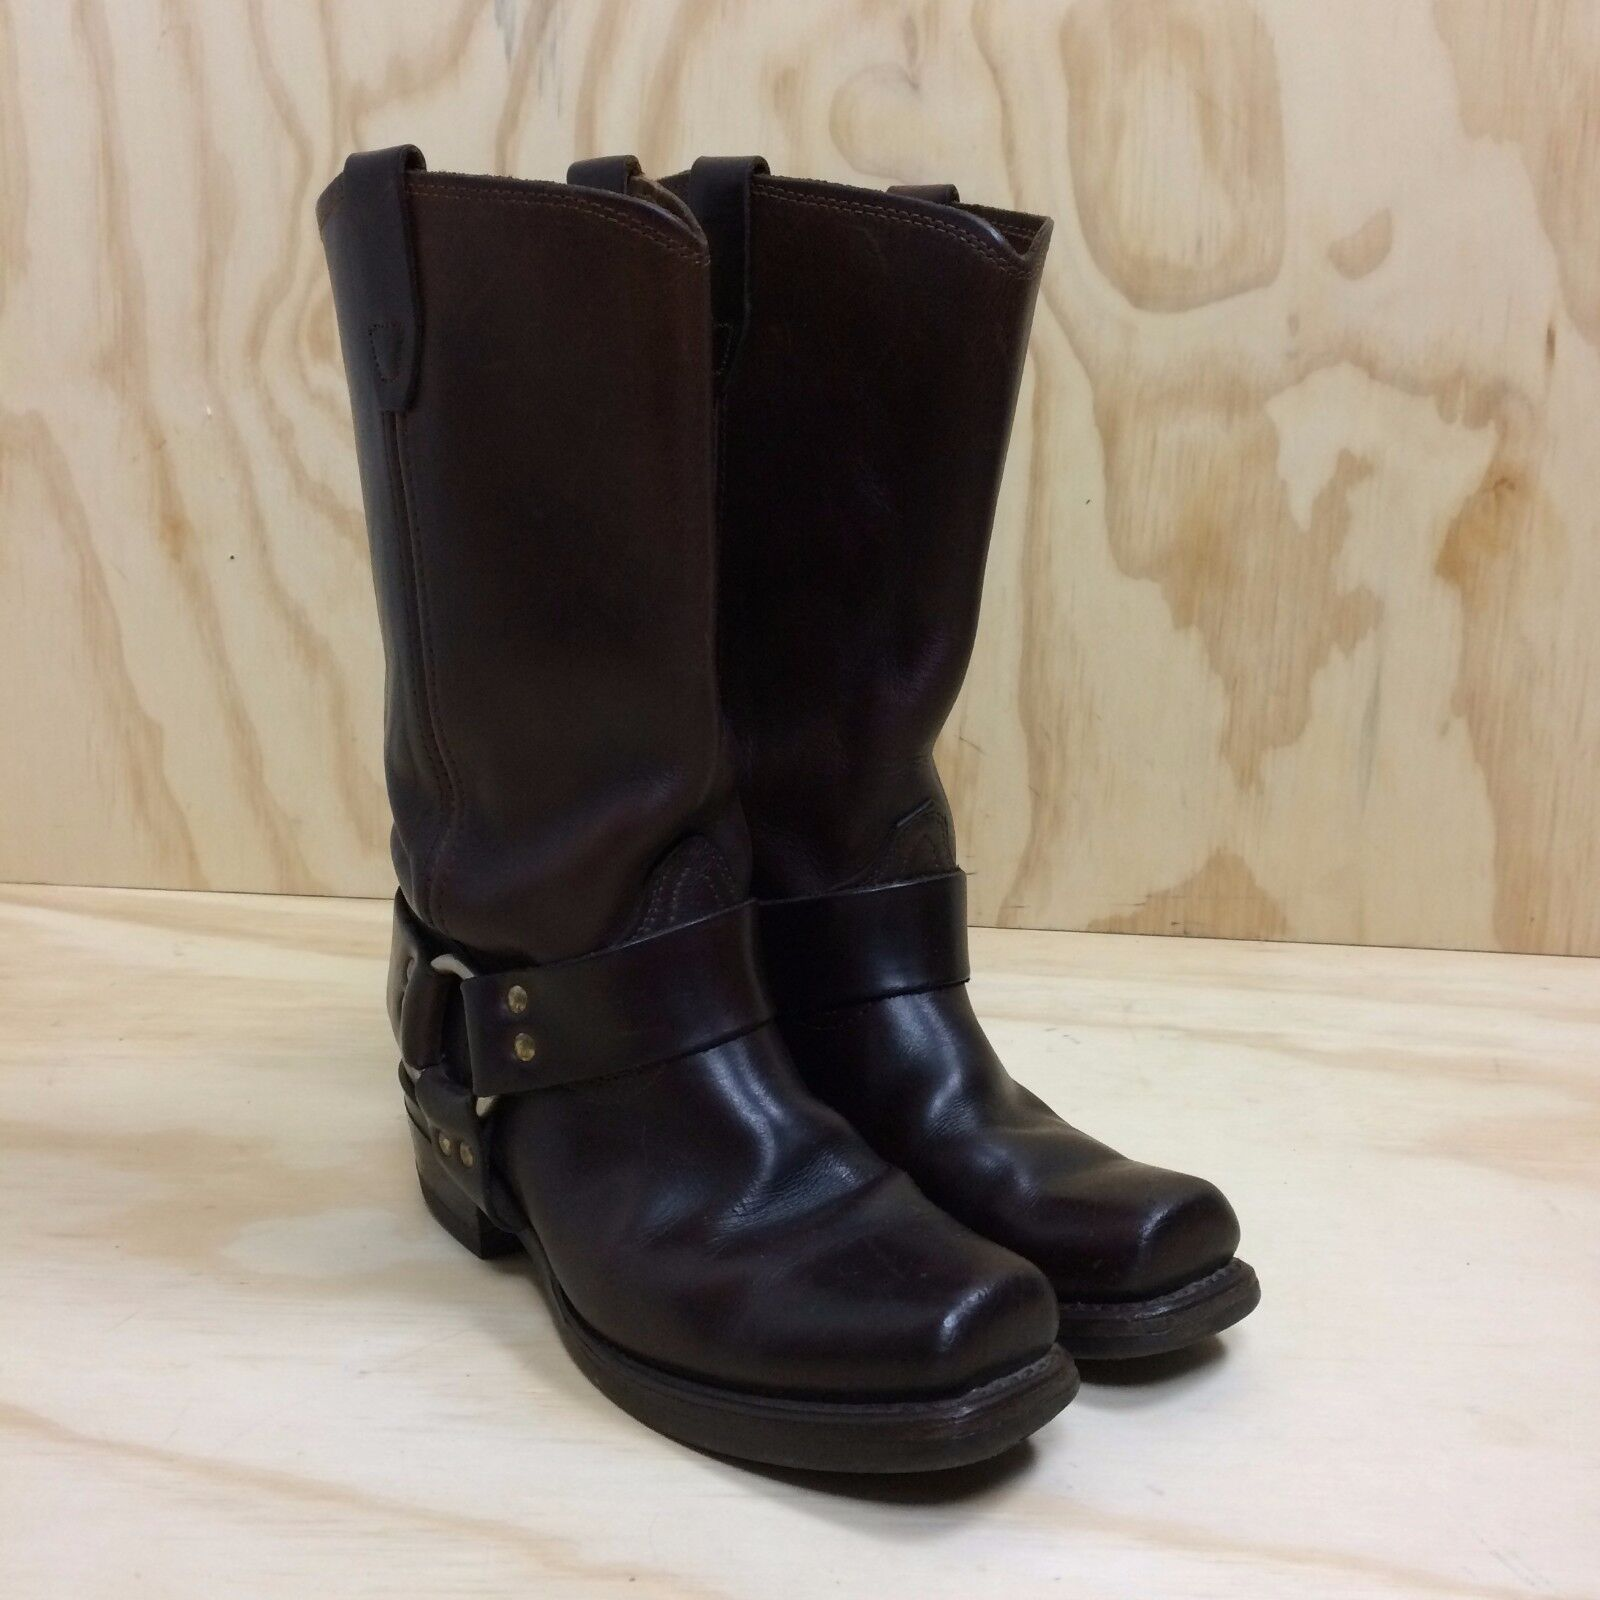 Durango Harness Motorcycle Engineer Brown Leather Boots Square Toe Men's 7.5M